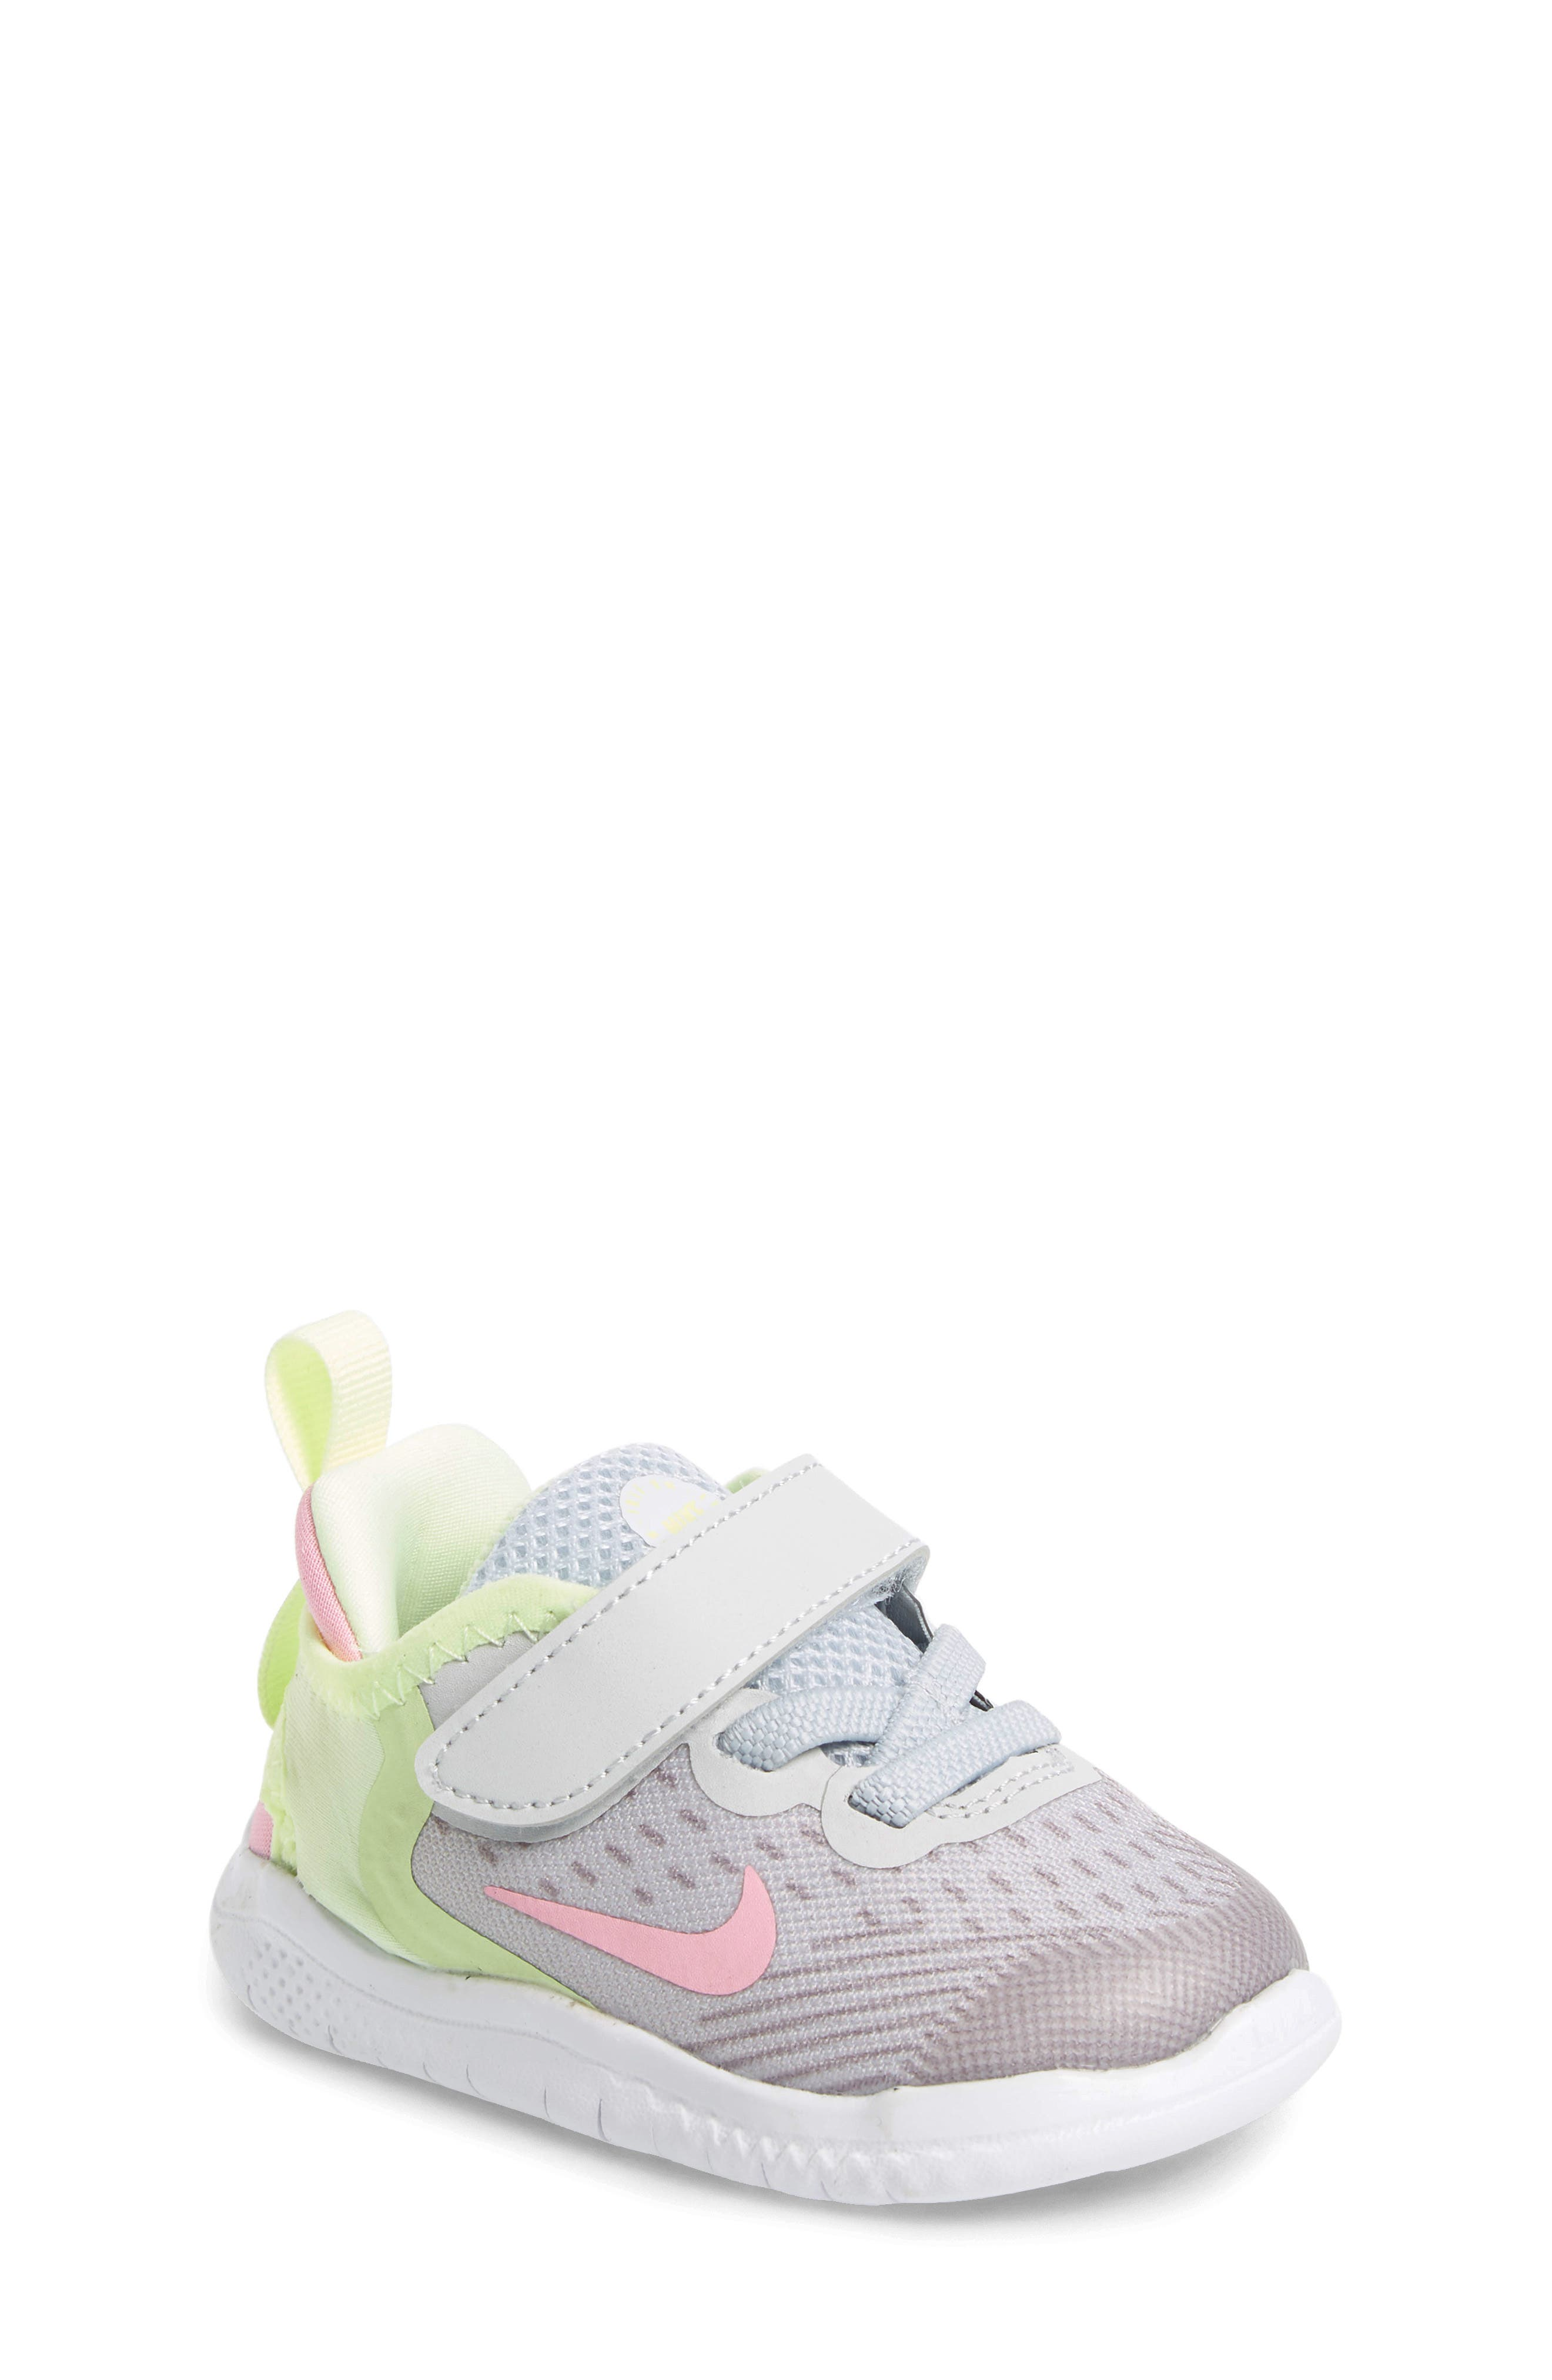 NIKE Free RN Running Shoe, Main, color, PURE PLATINUM/ PINK RISE-VOLT